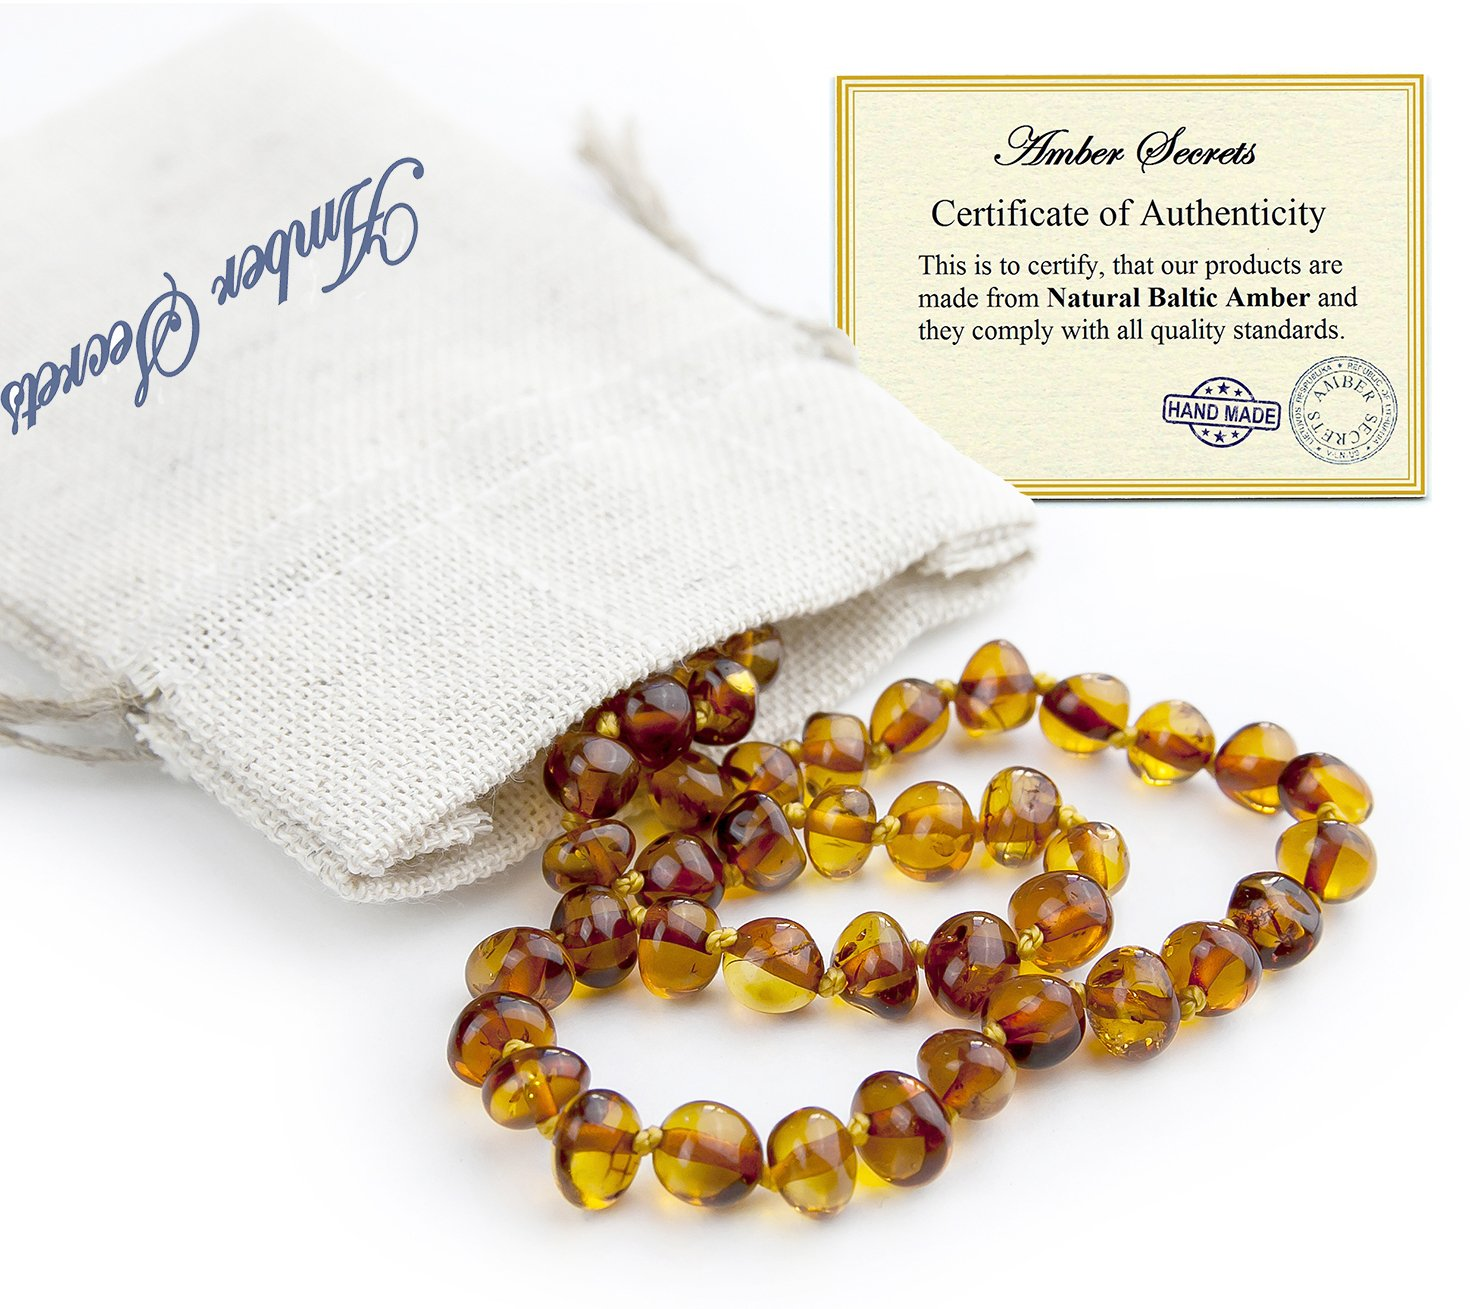 Baltic Amber Teething Necklace for Babies (Unisex) - Color Cognac - Natural Certificated Oval Baltic Jewelry with The Highest Quality Guaranteed - Easy to Fastens, Screw Clasp - Packed in Linen Bag by Amber Secrets